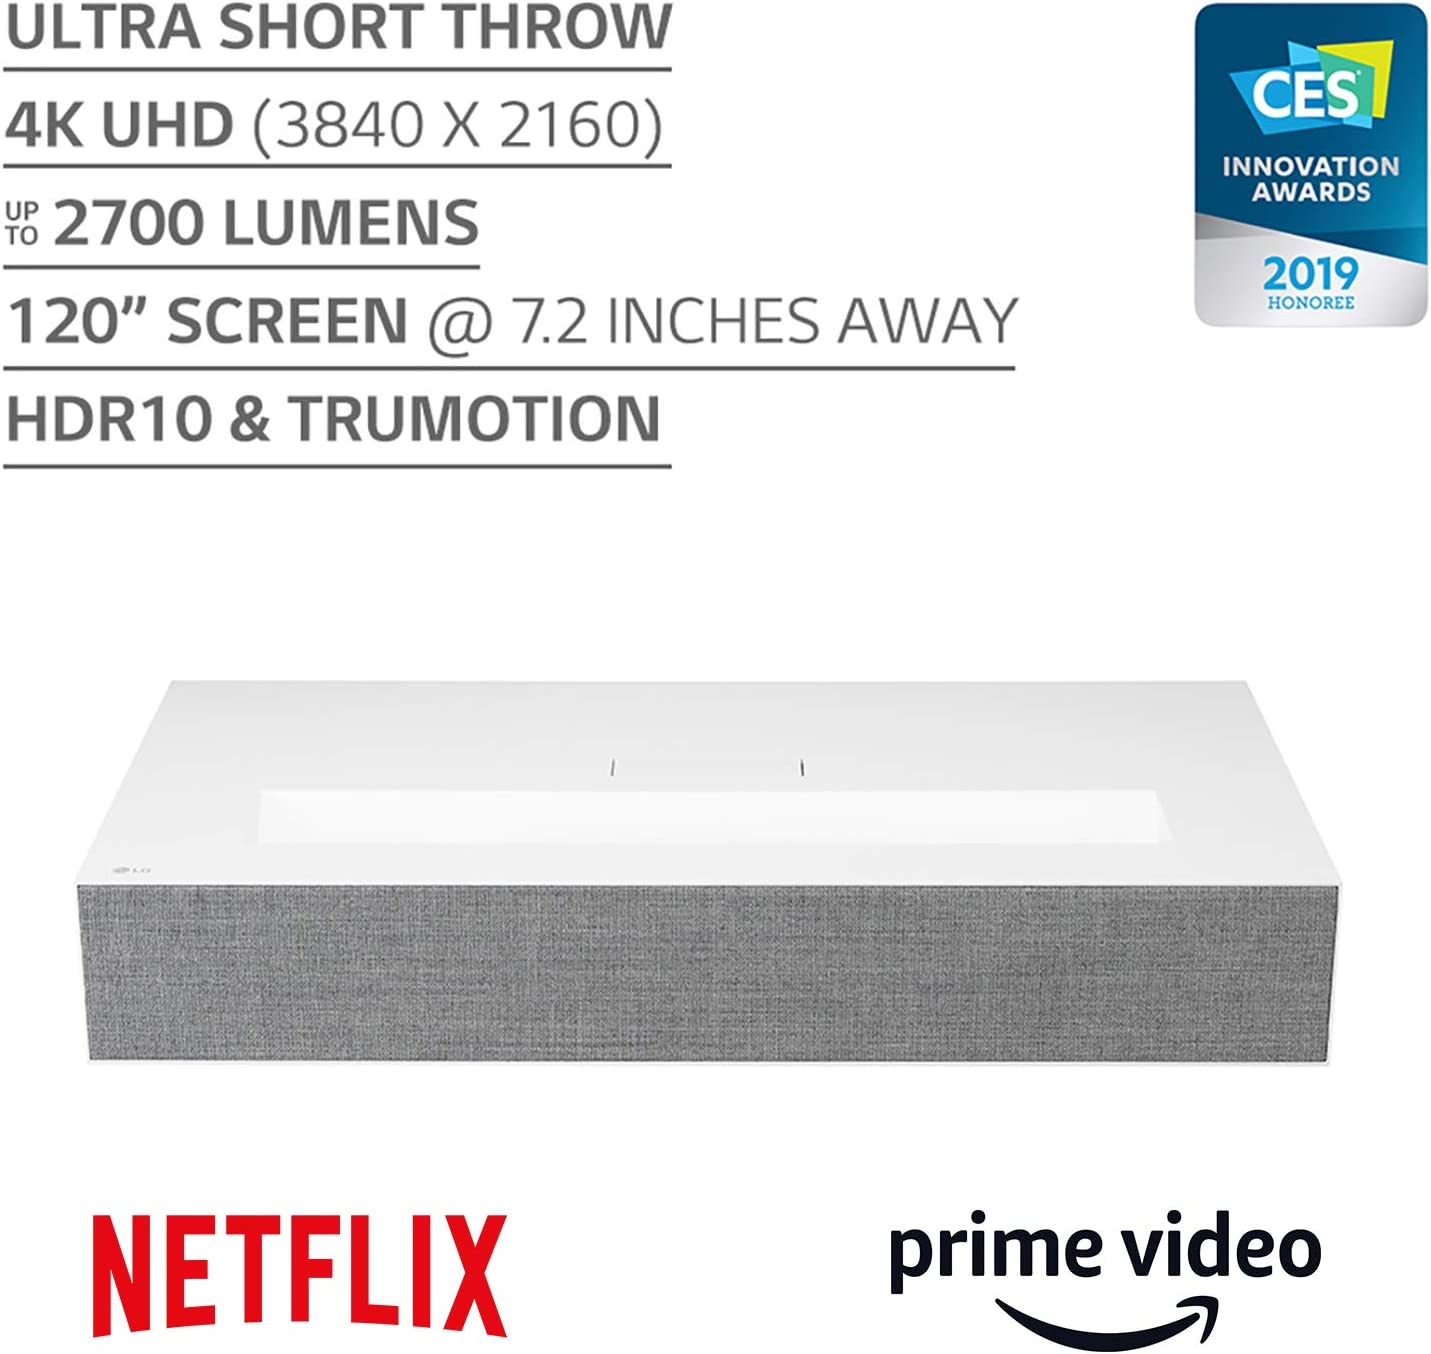 Up to 30% off on LG HU85LA Ultra Short Throw 4K UHD Laser Smart Home Theater Cinebeam Projector with Alexa built-in, LG Thinq AI, the Google Assistant and LG webOS Lite Smart TV (Netflix, Amazon Prime and VUDU)